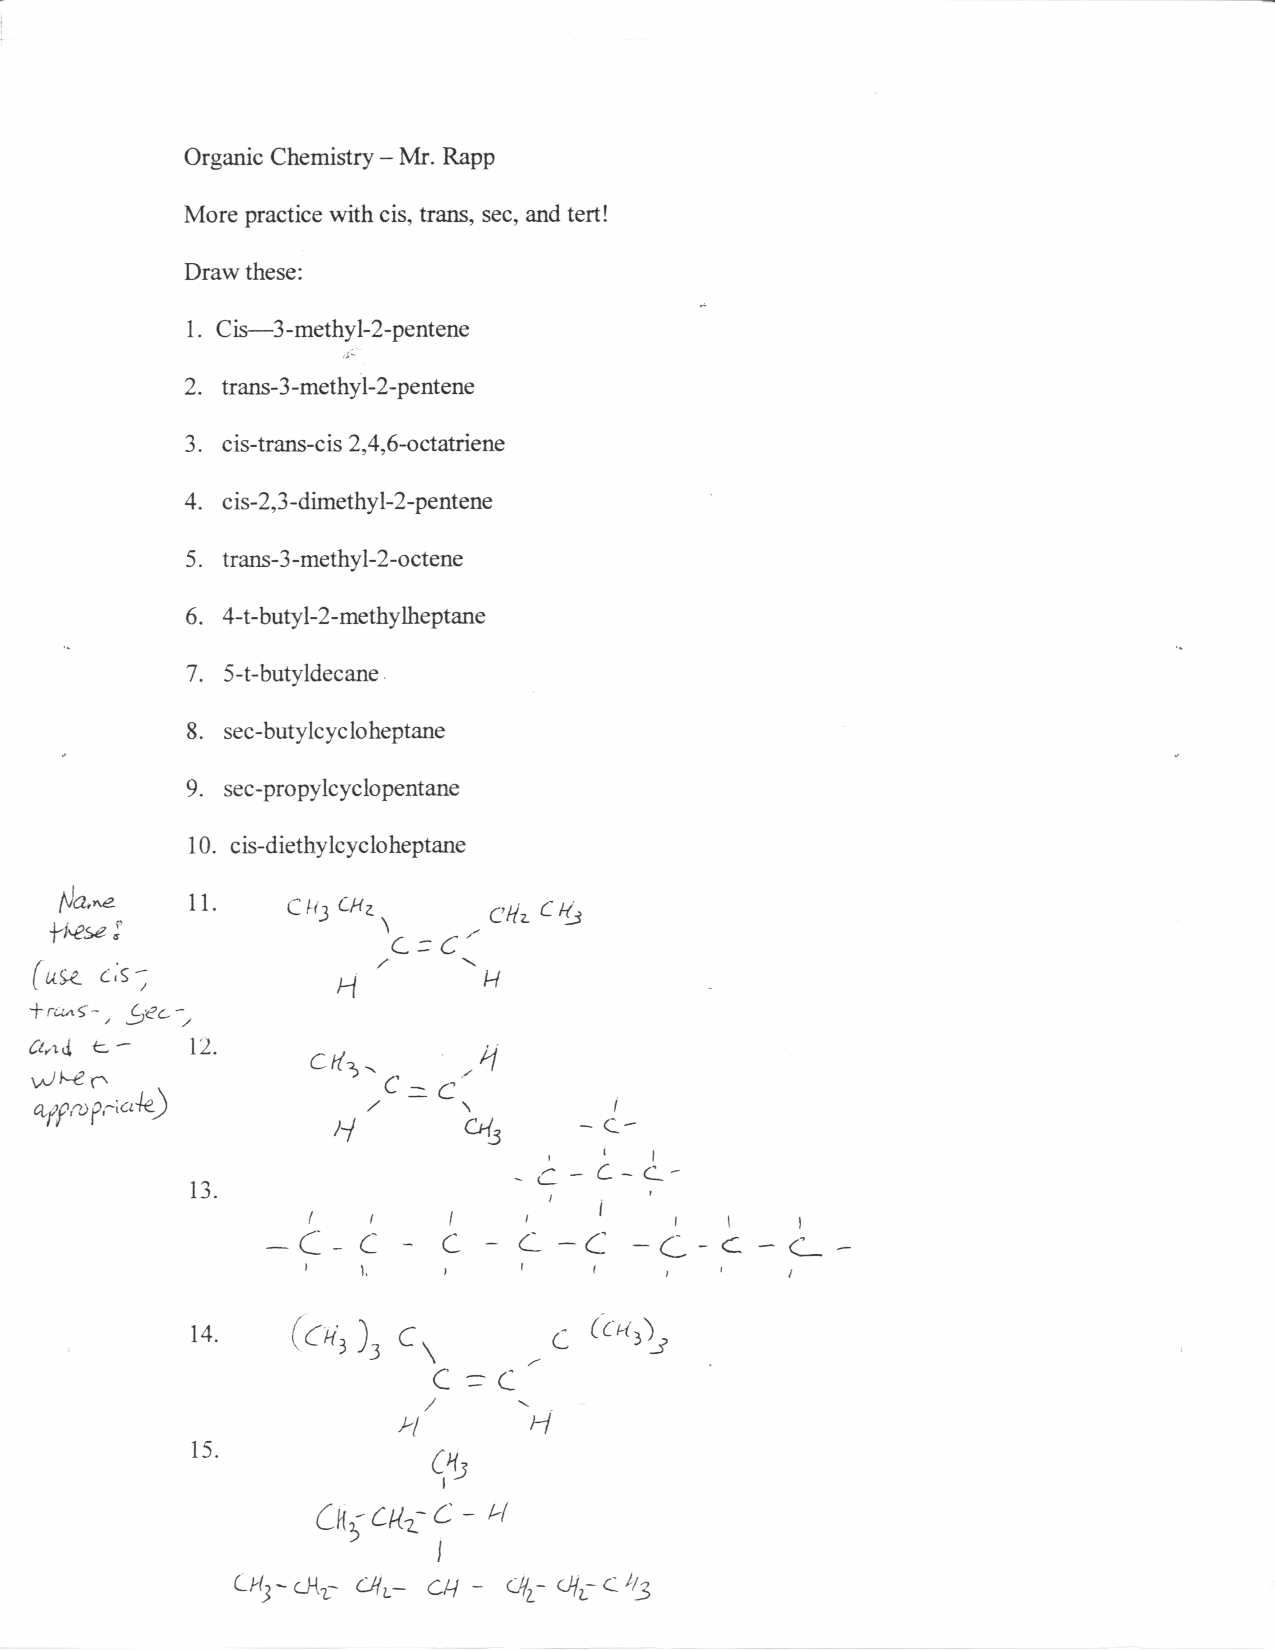 Worksheets Organic Chemistry Nomenclature Worksheet chemical nomenclature worksheet packet delwfg com organic chemistry